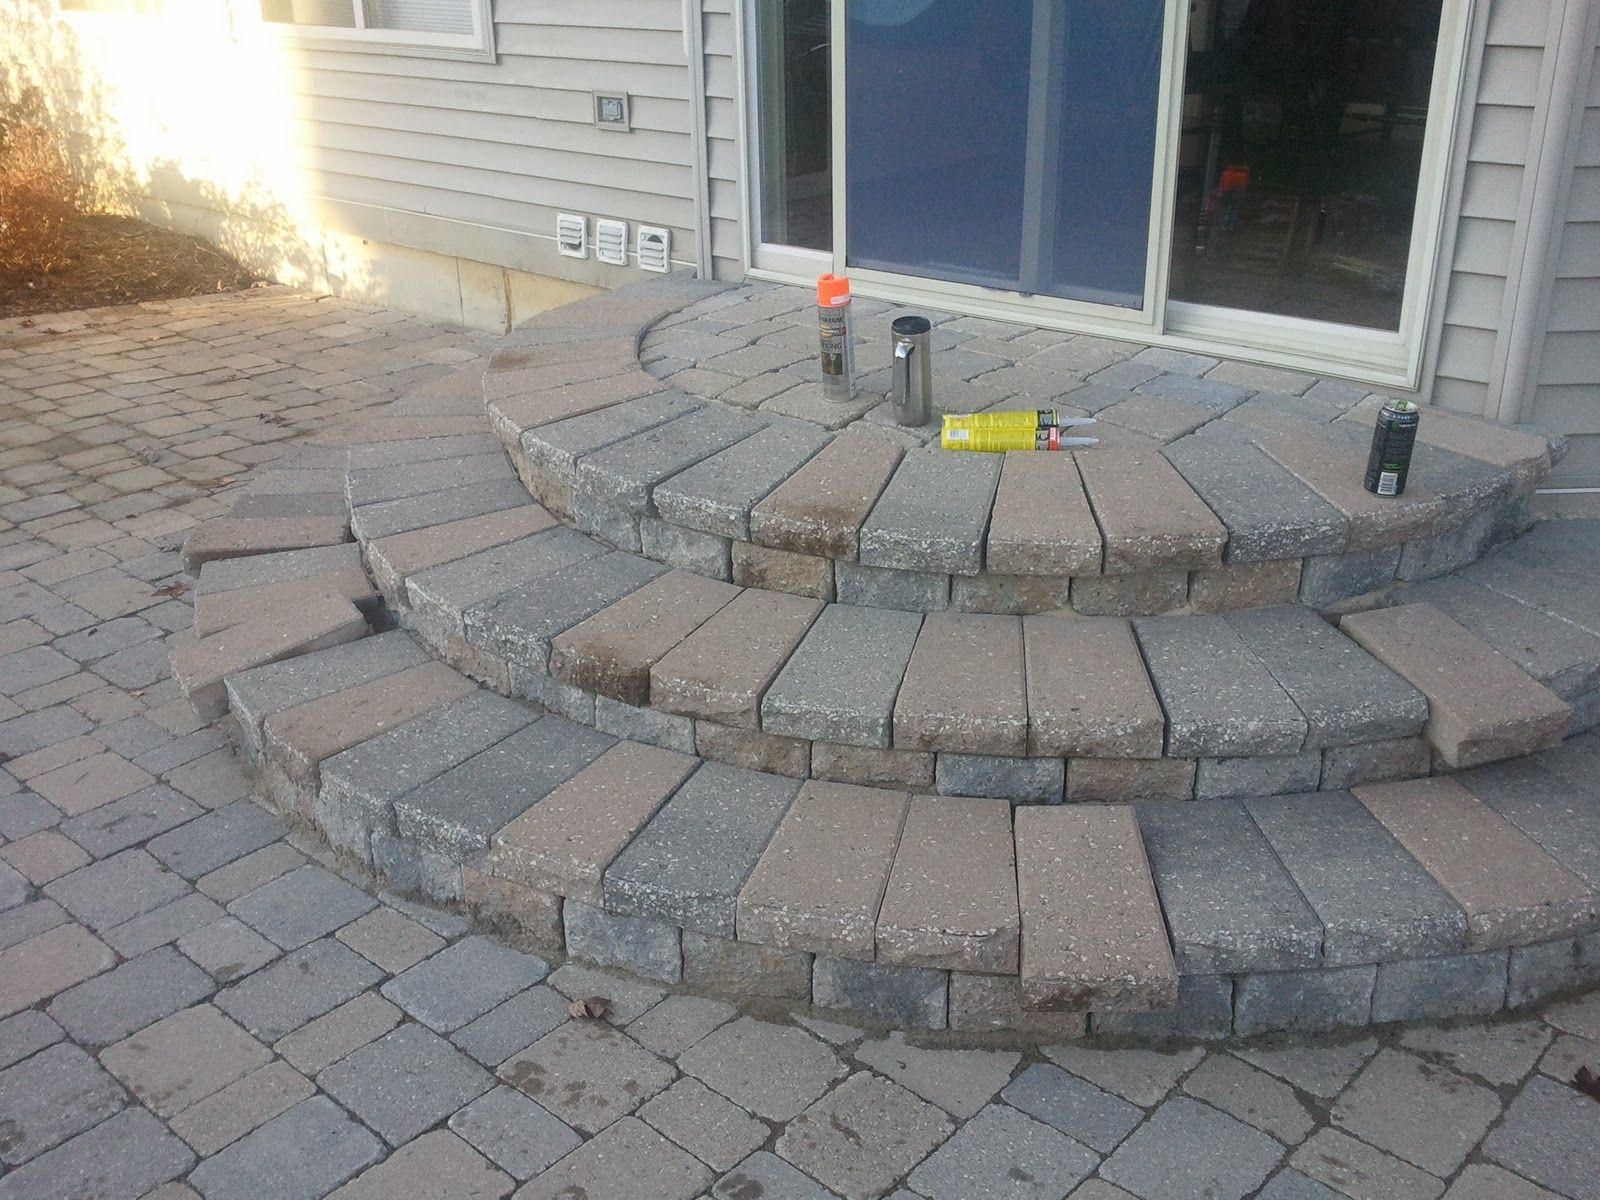 Simple Paver Patio Designs | Brick Pavers Ann Arbor,Canton,Patios,Repair,